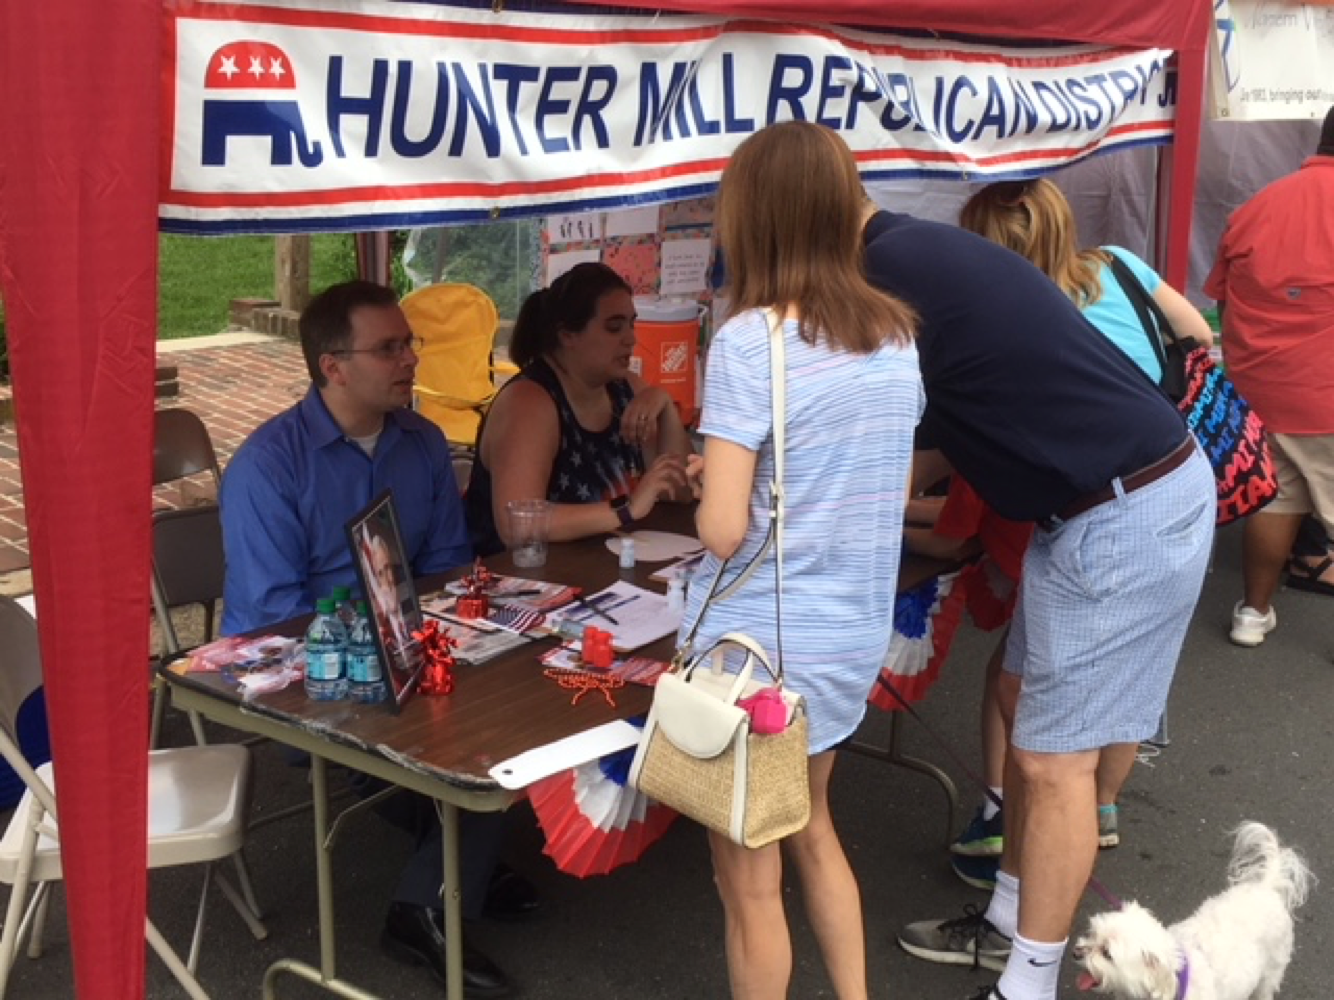 Congratulations to the Hunter Mill Republicans for signing up over 100 volunteers at their ViVa! Vienna!* tent over the Memorial Day Weekend. District Chairman Amanda Morris organized a team of 17 volunteers to staff the Republican tent, which was located midway down Vienna's Church Street in the heart of the celebration. Along with those who signed up to help the Republican Party, hundreds of ...